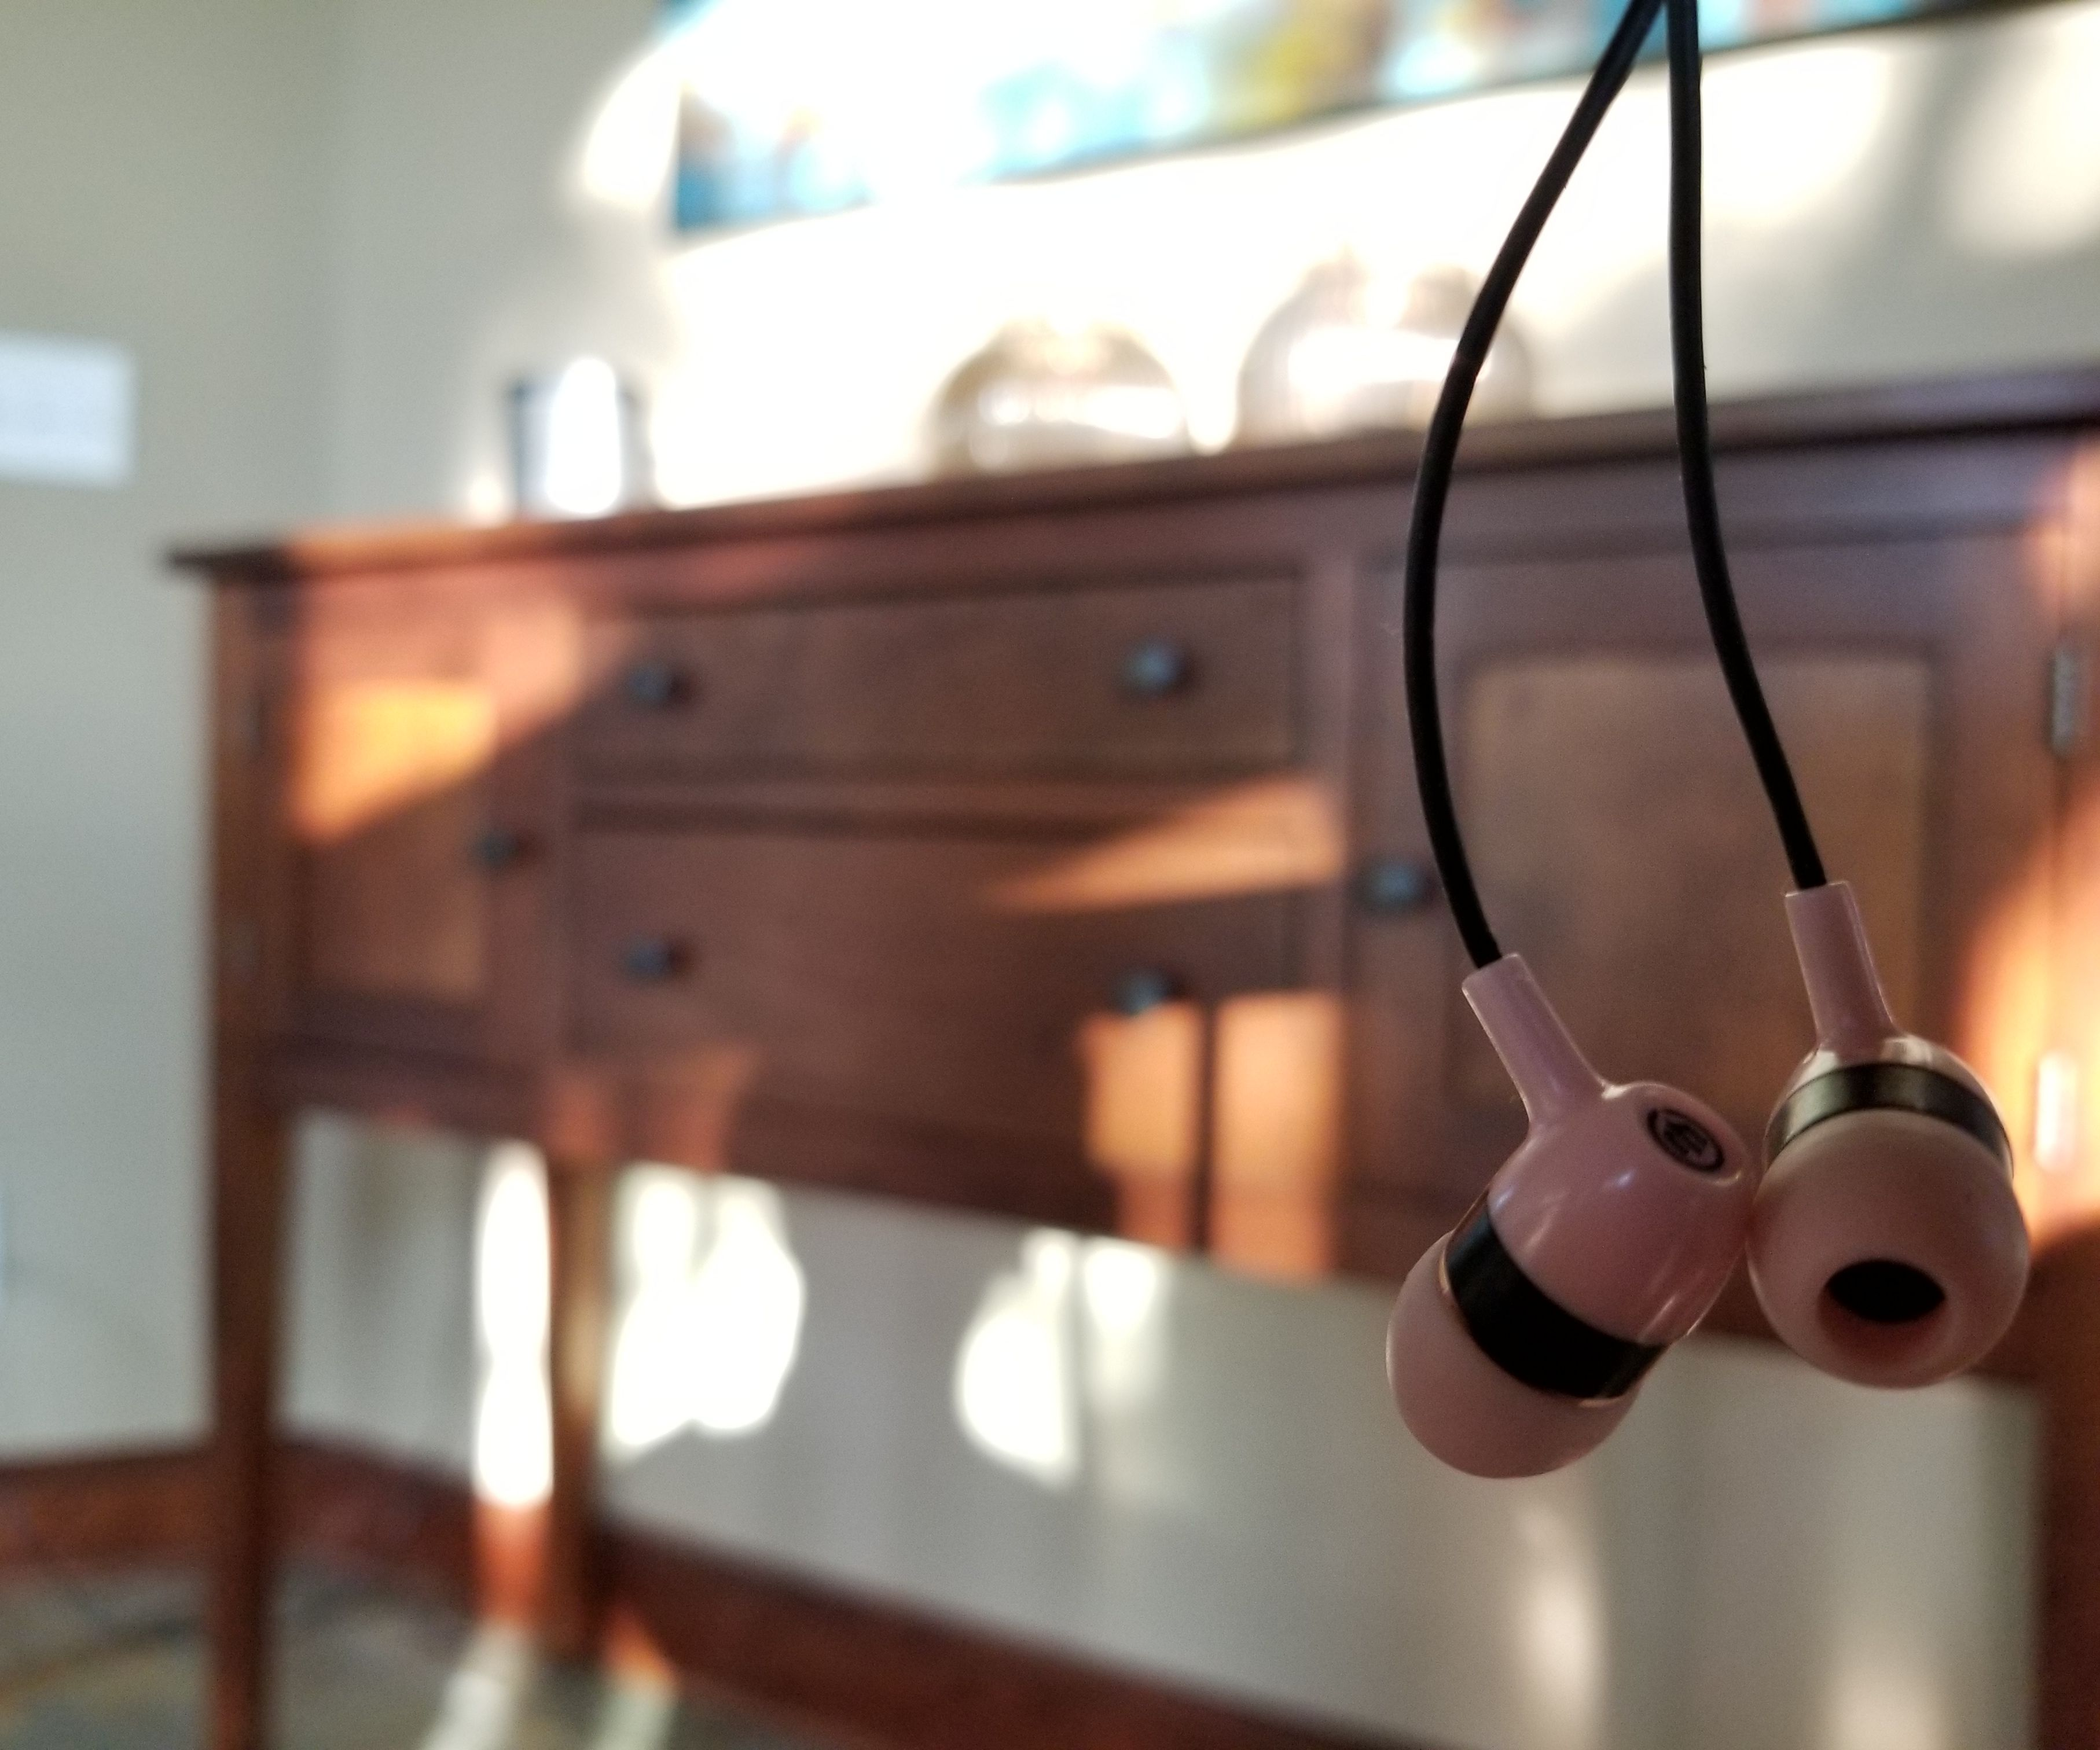 Turn Broken Headphones Into an AUX Cable